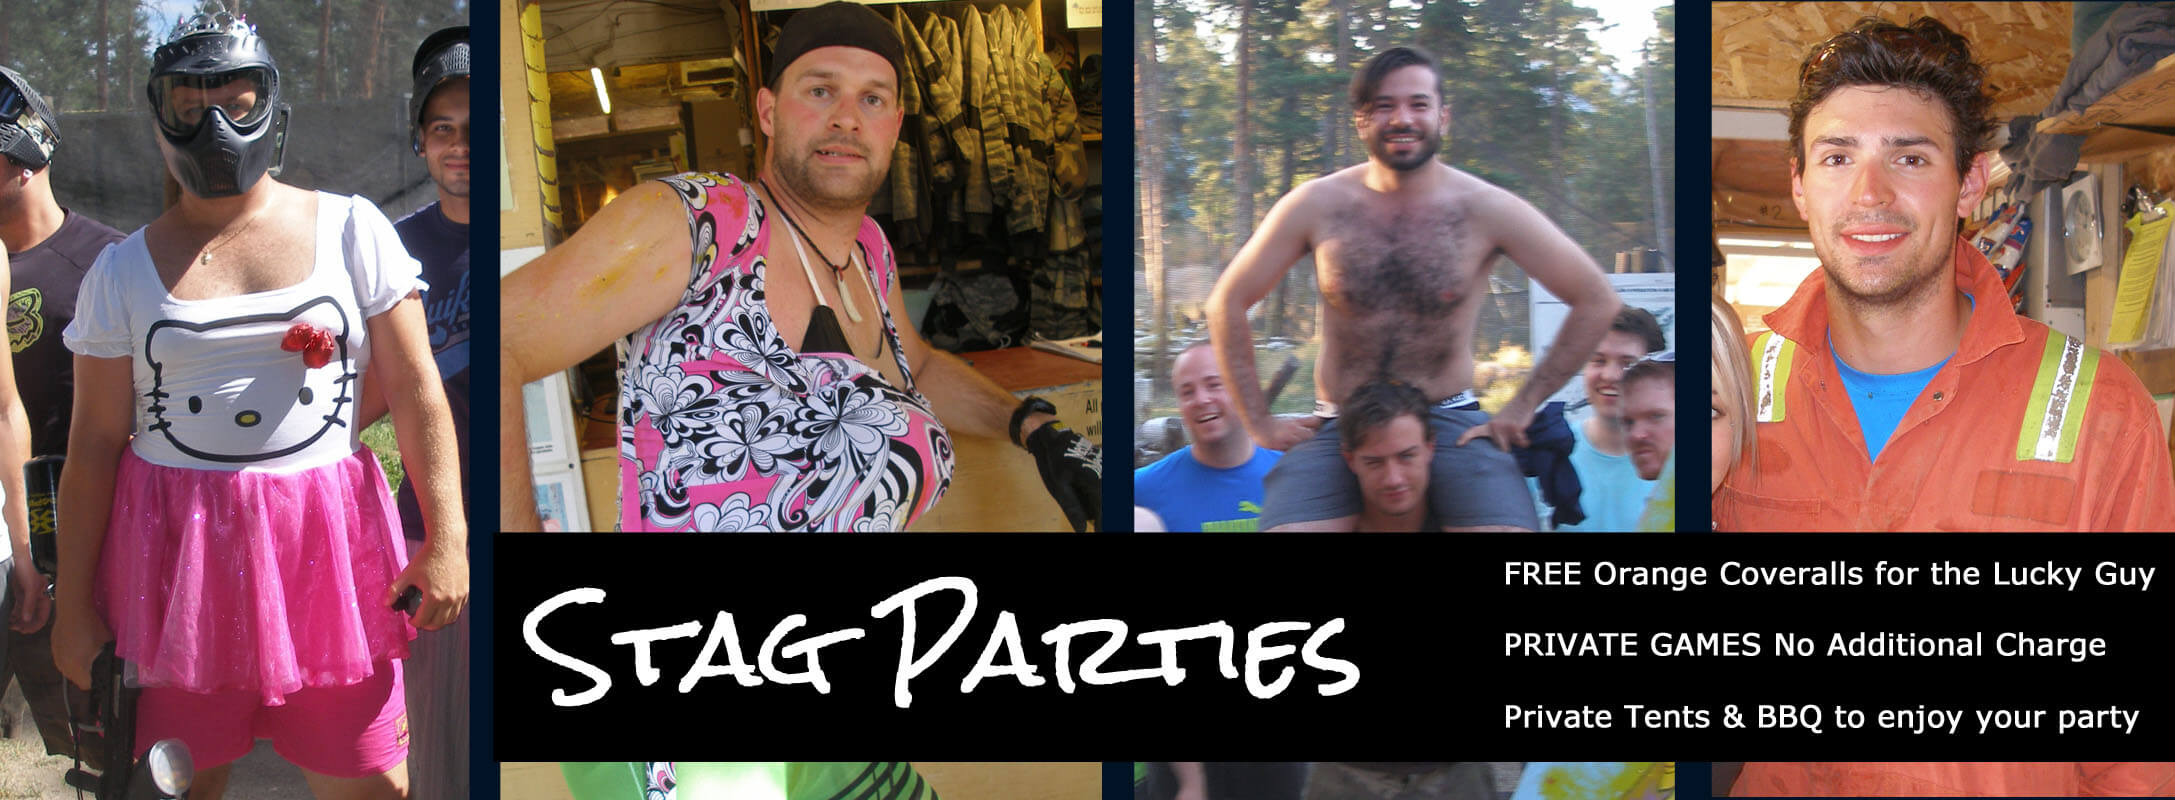 Have your Stag Party at Safari Ridge Adventure Park